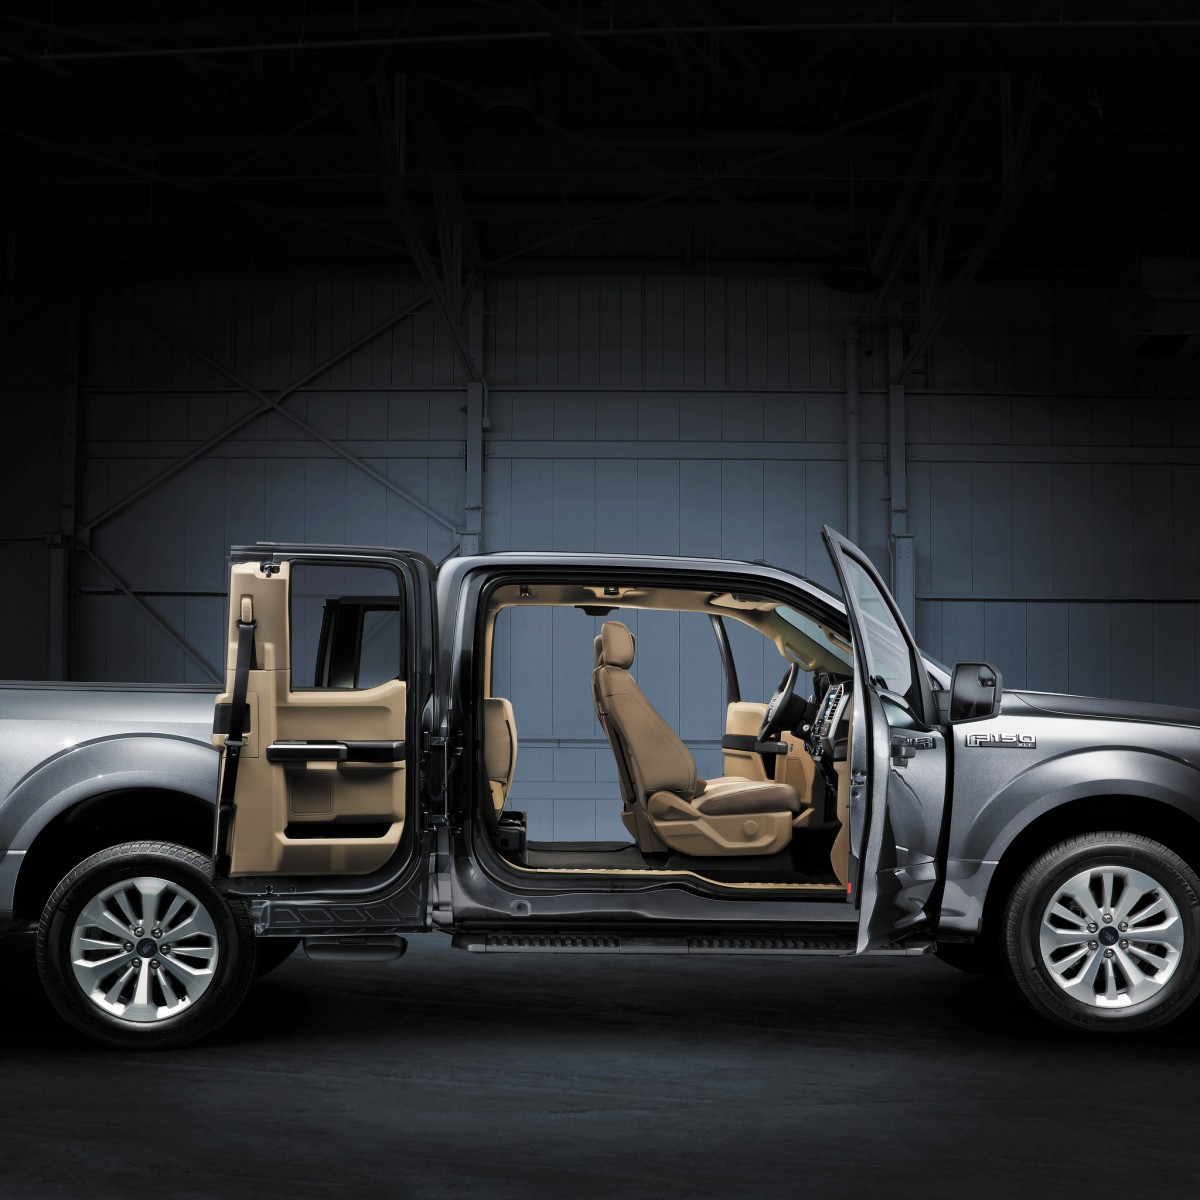 2016 Ford F-150: Safest Truck On The Road